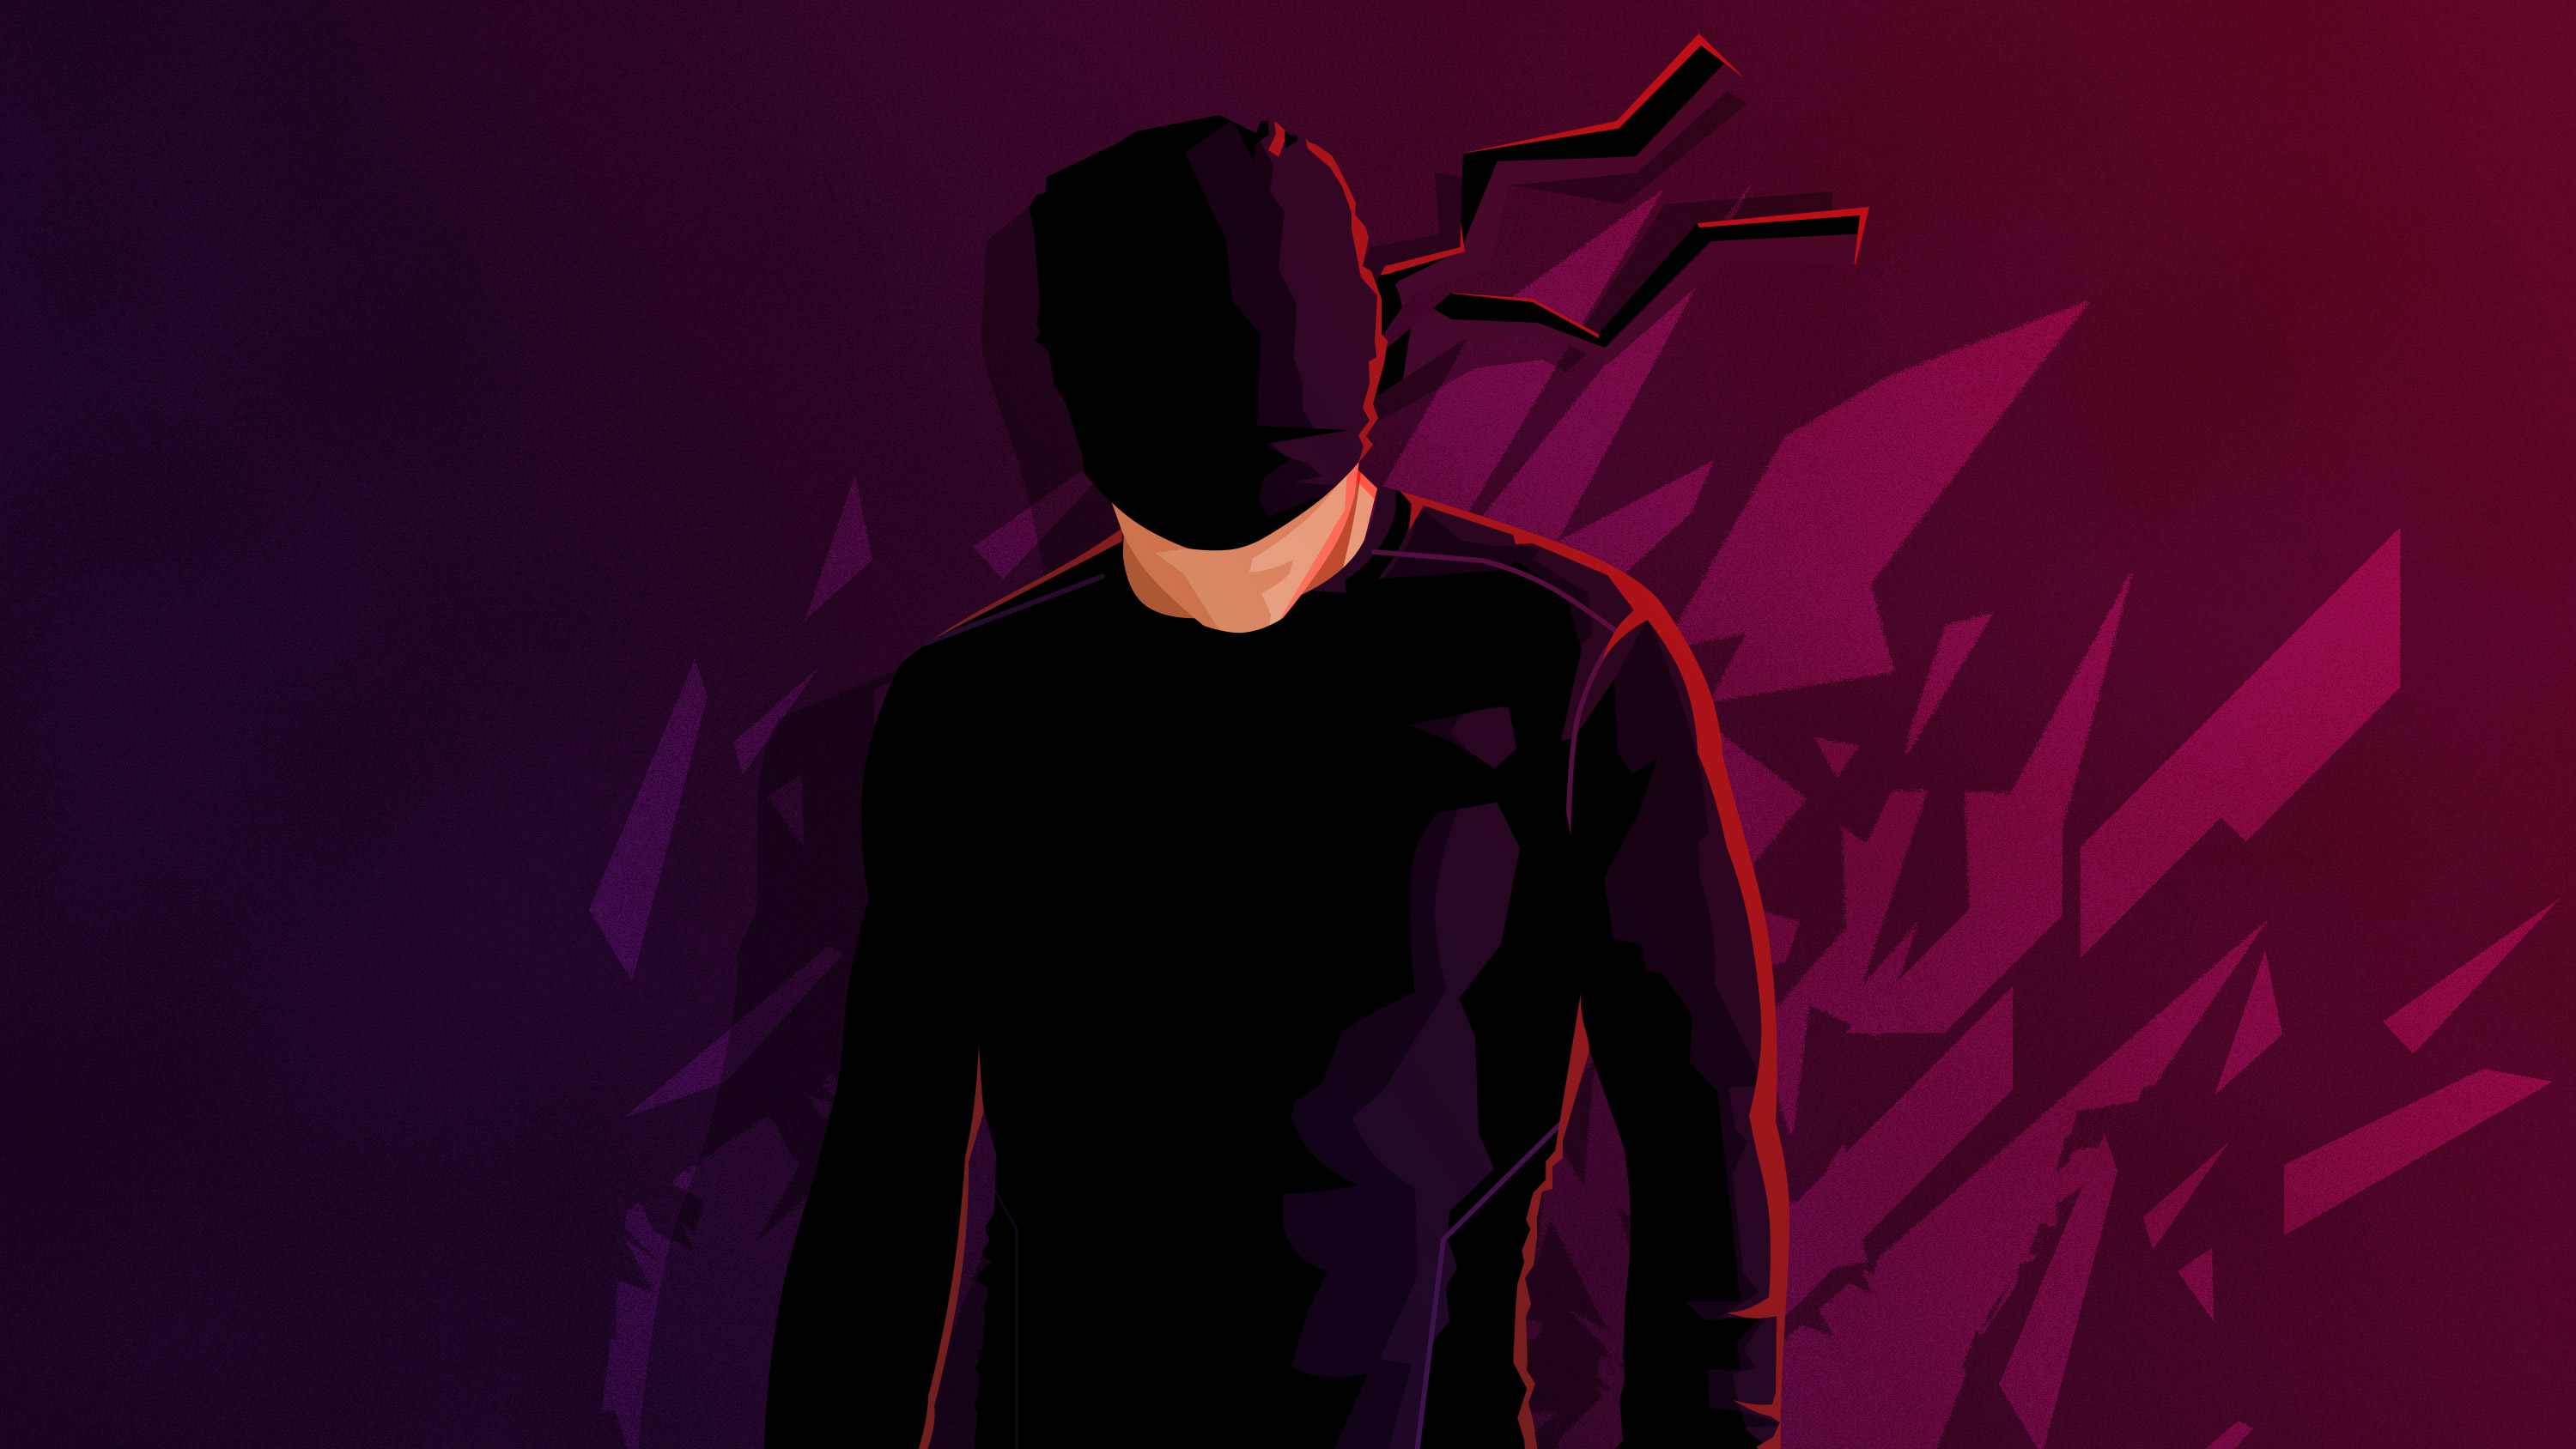 Daredevil Minimalism Hd Hd Superheroes 4k Wallpapers Images Backgrounds Photos And Pictures